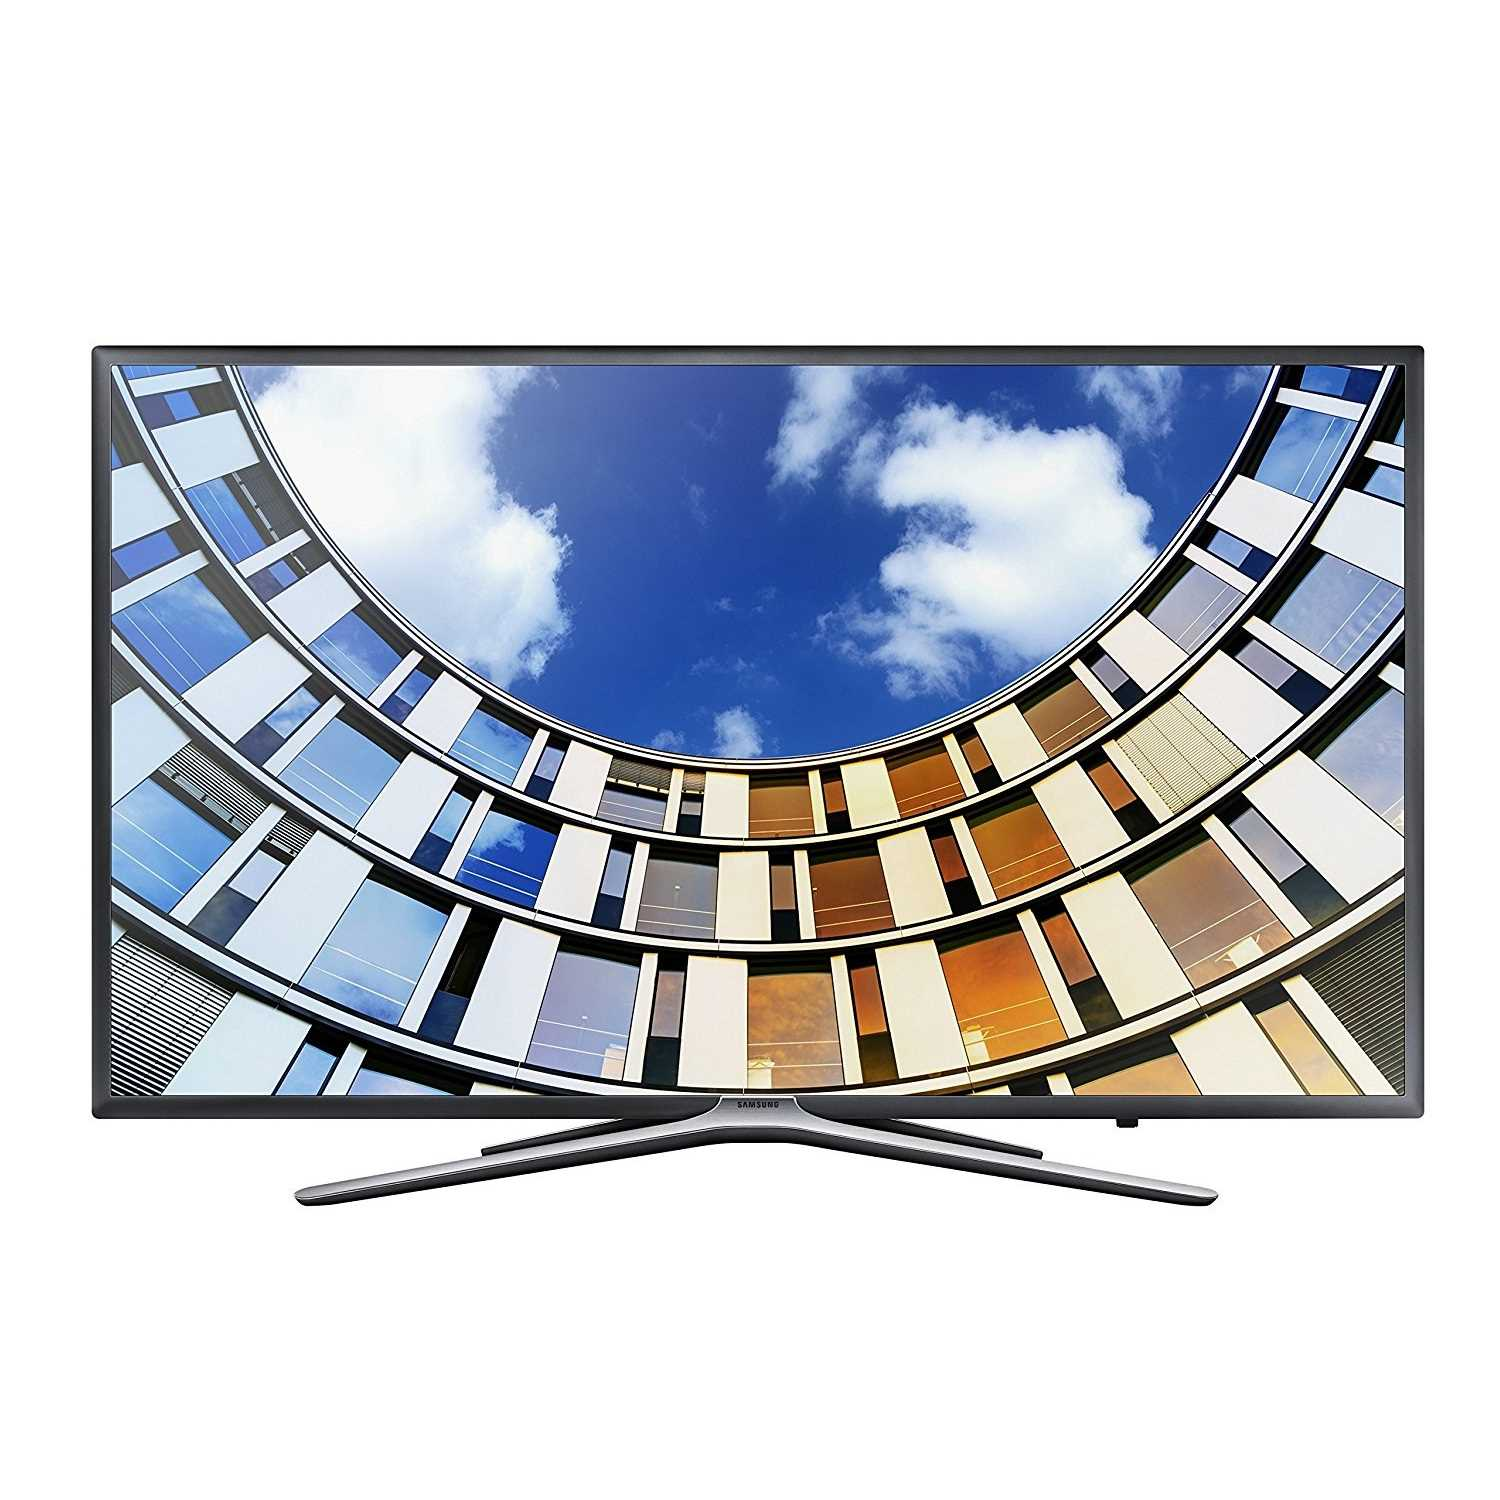 Samsung 49M5570 49 Inch Full HD LED Television